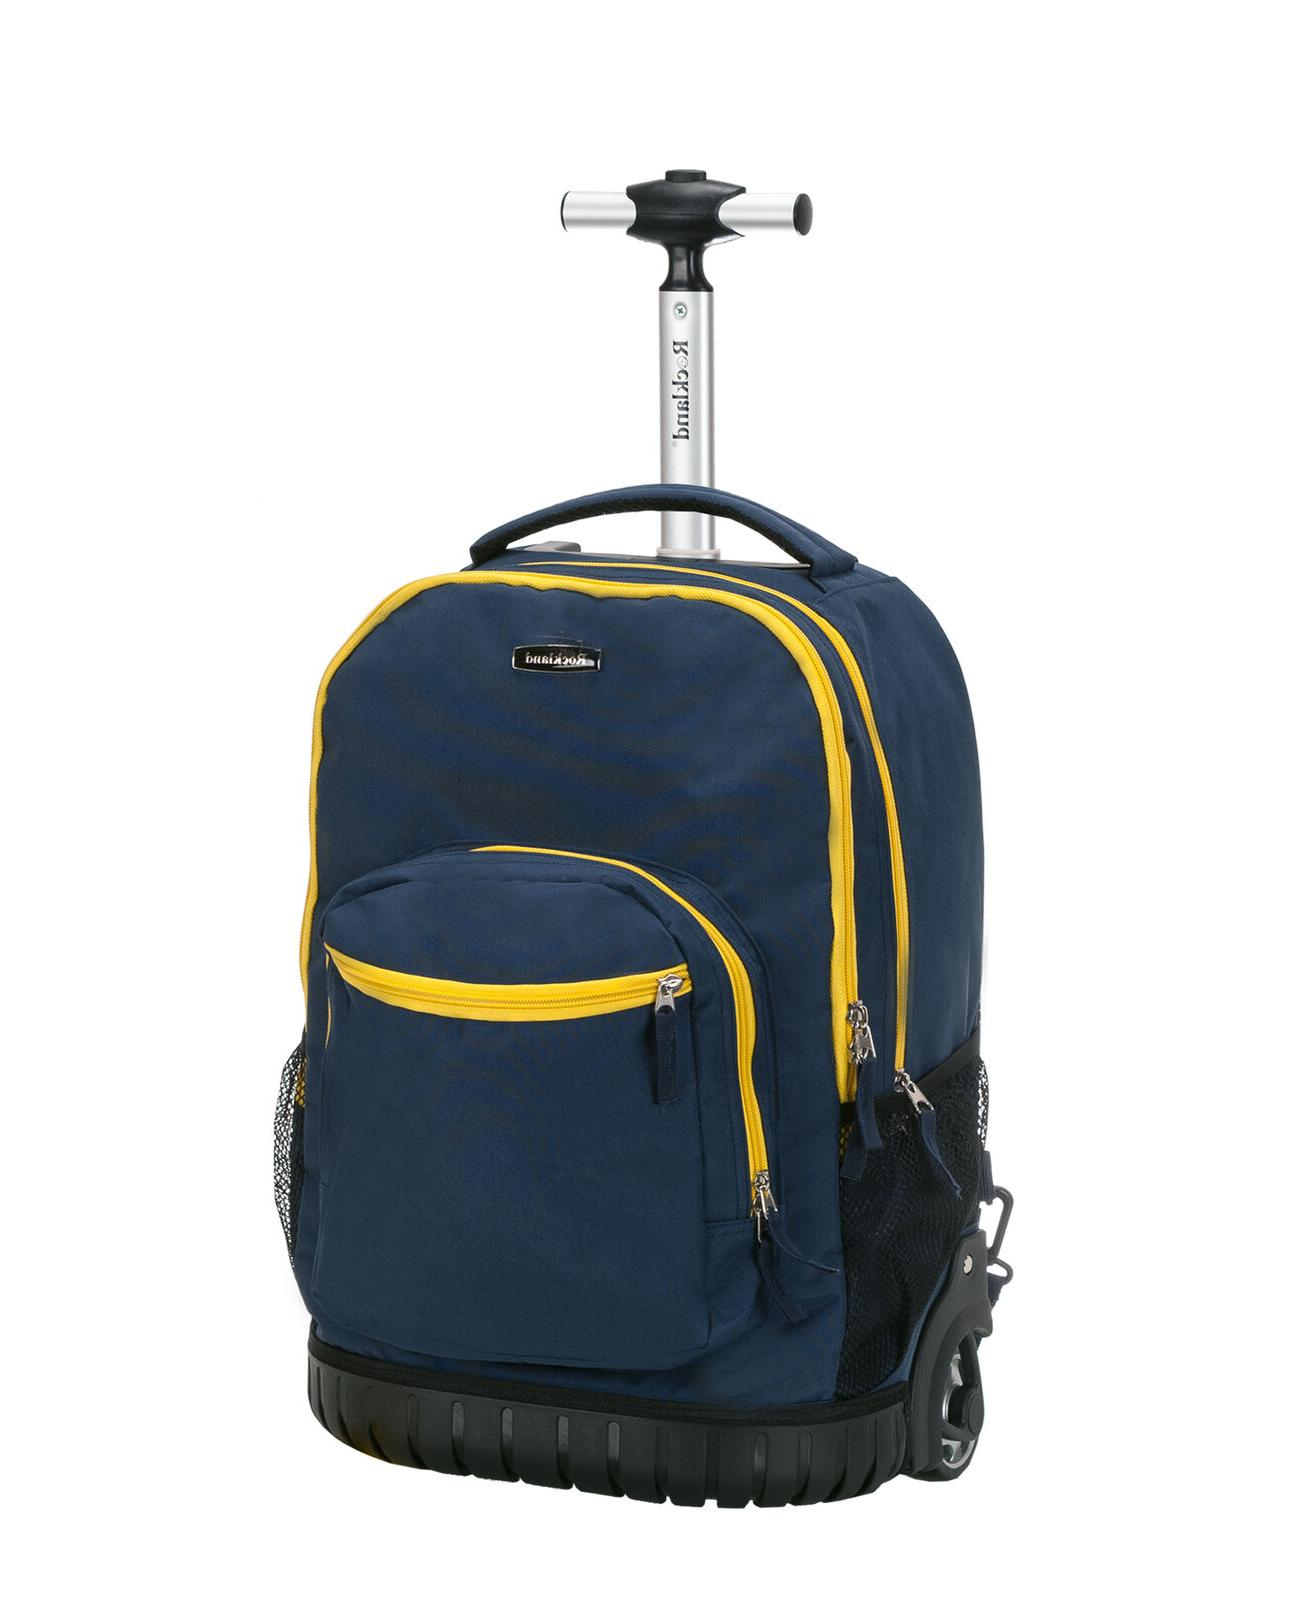 Rockland Unisex 19 Rolling Backpack Size 13 x 10 x 19